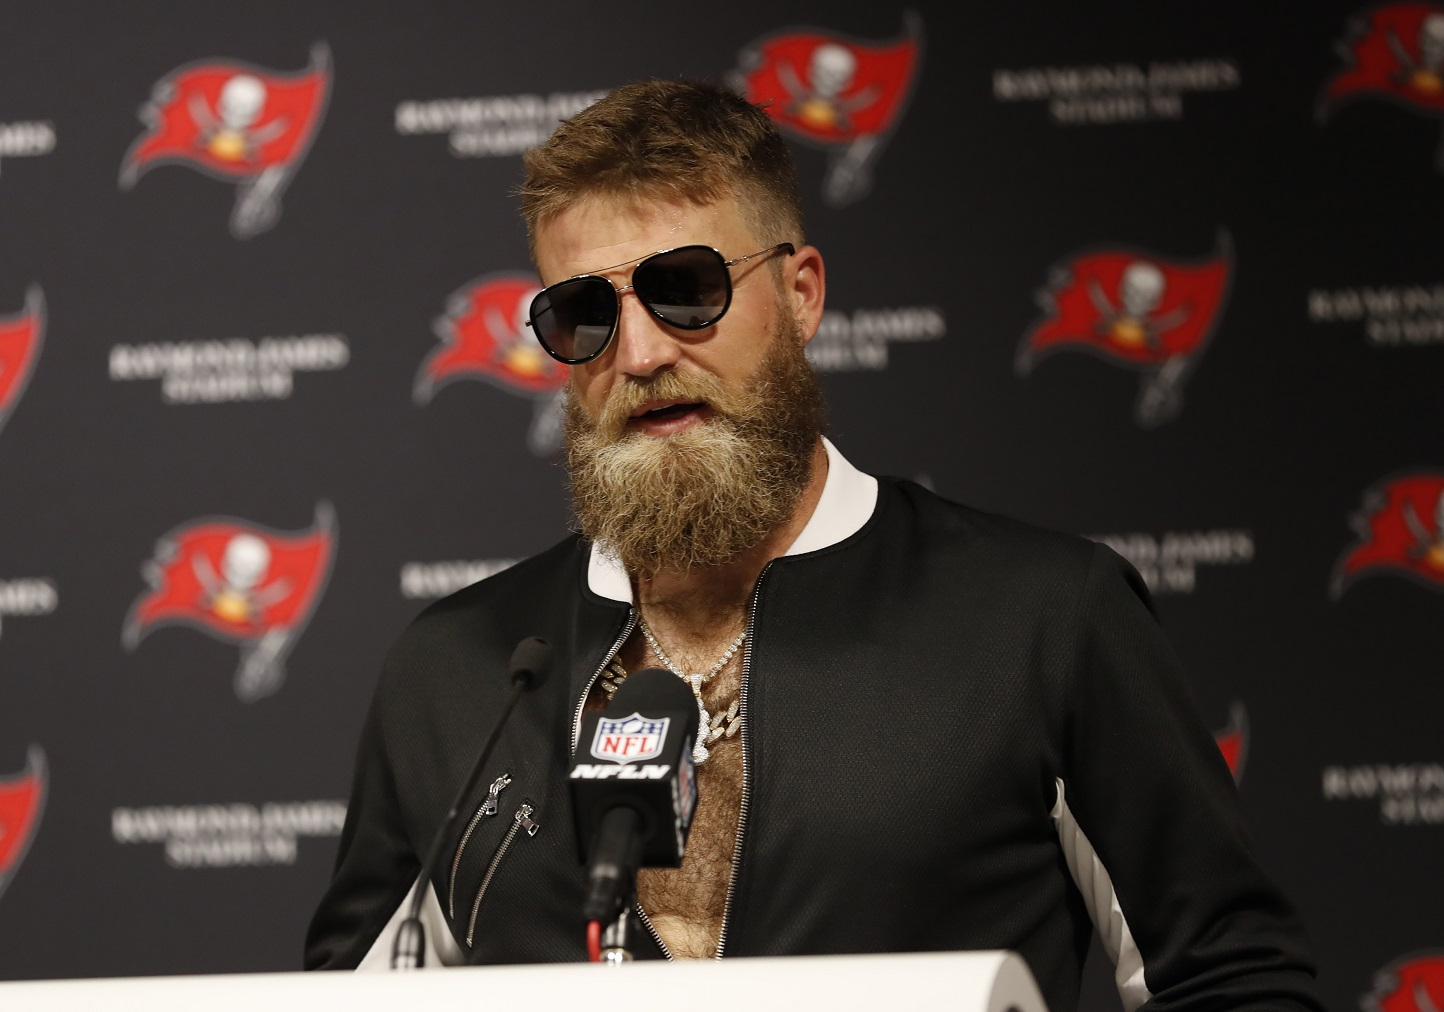 WATCH: Blinged out Ryan Fitzpatrick with hilarious post-game presser